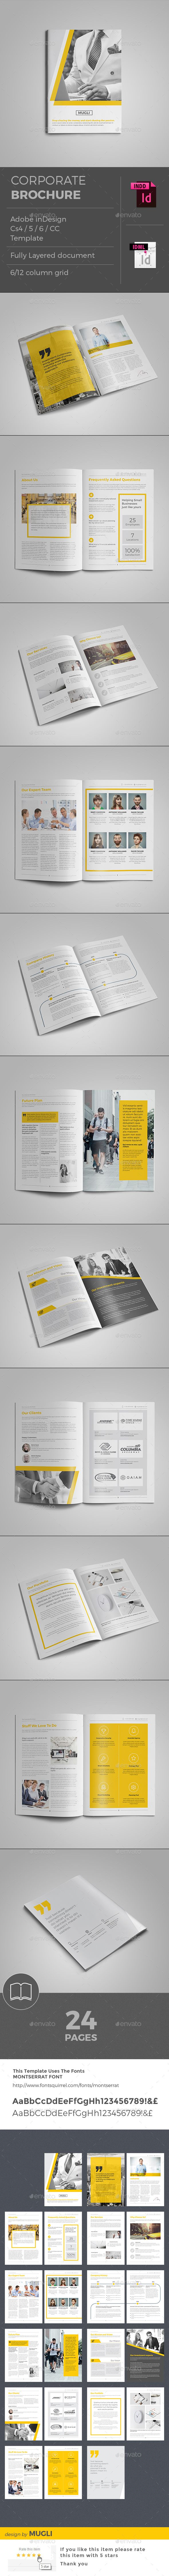 Corporate Brochure Template InDesign INDD #design Download: http://graphicriver.net/item/corporate-brochure/14400261?ref=ksioks